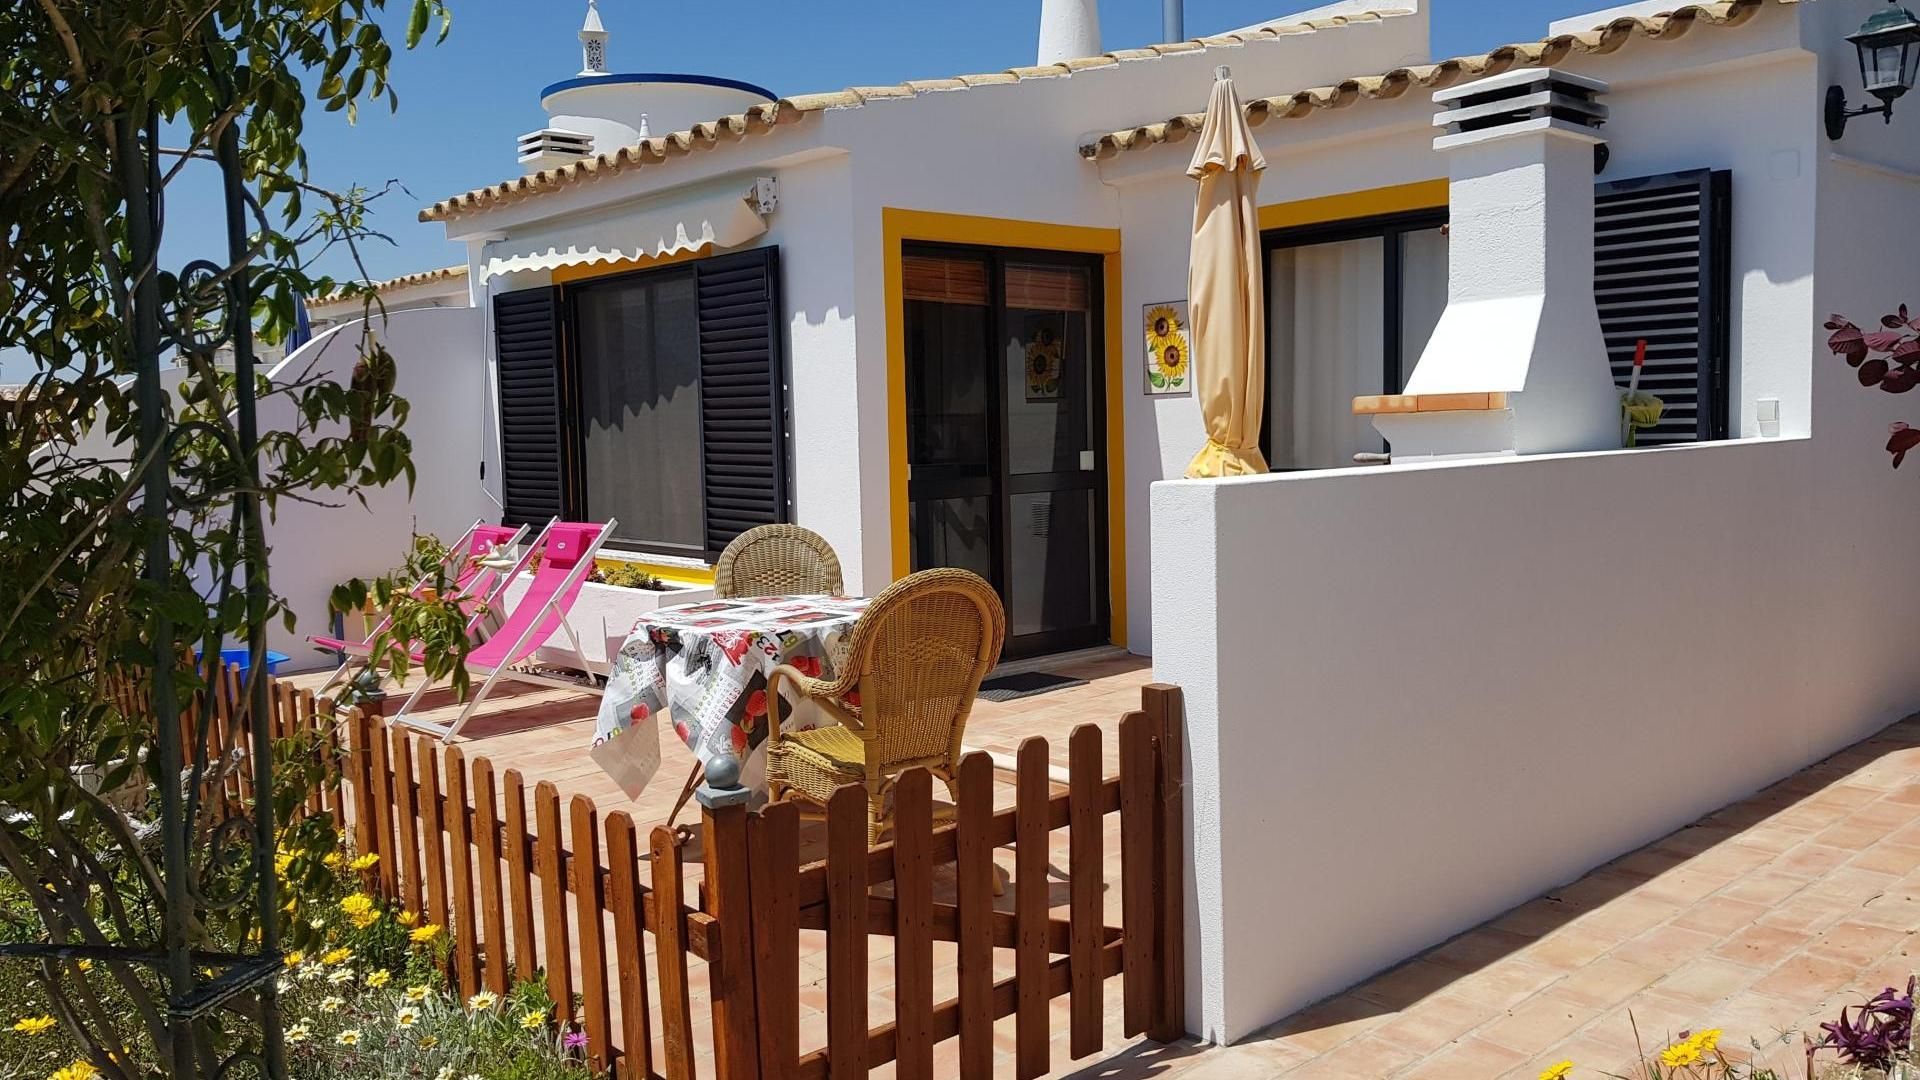 1 Bedroom Cottage/shared facilities in  Portugal